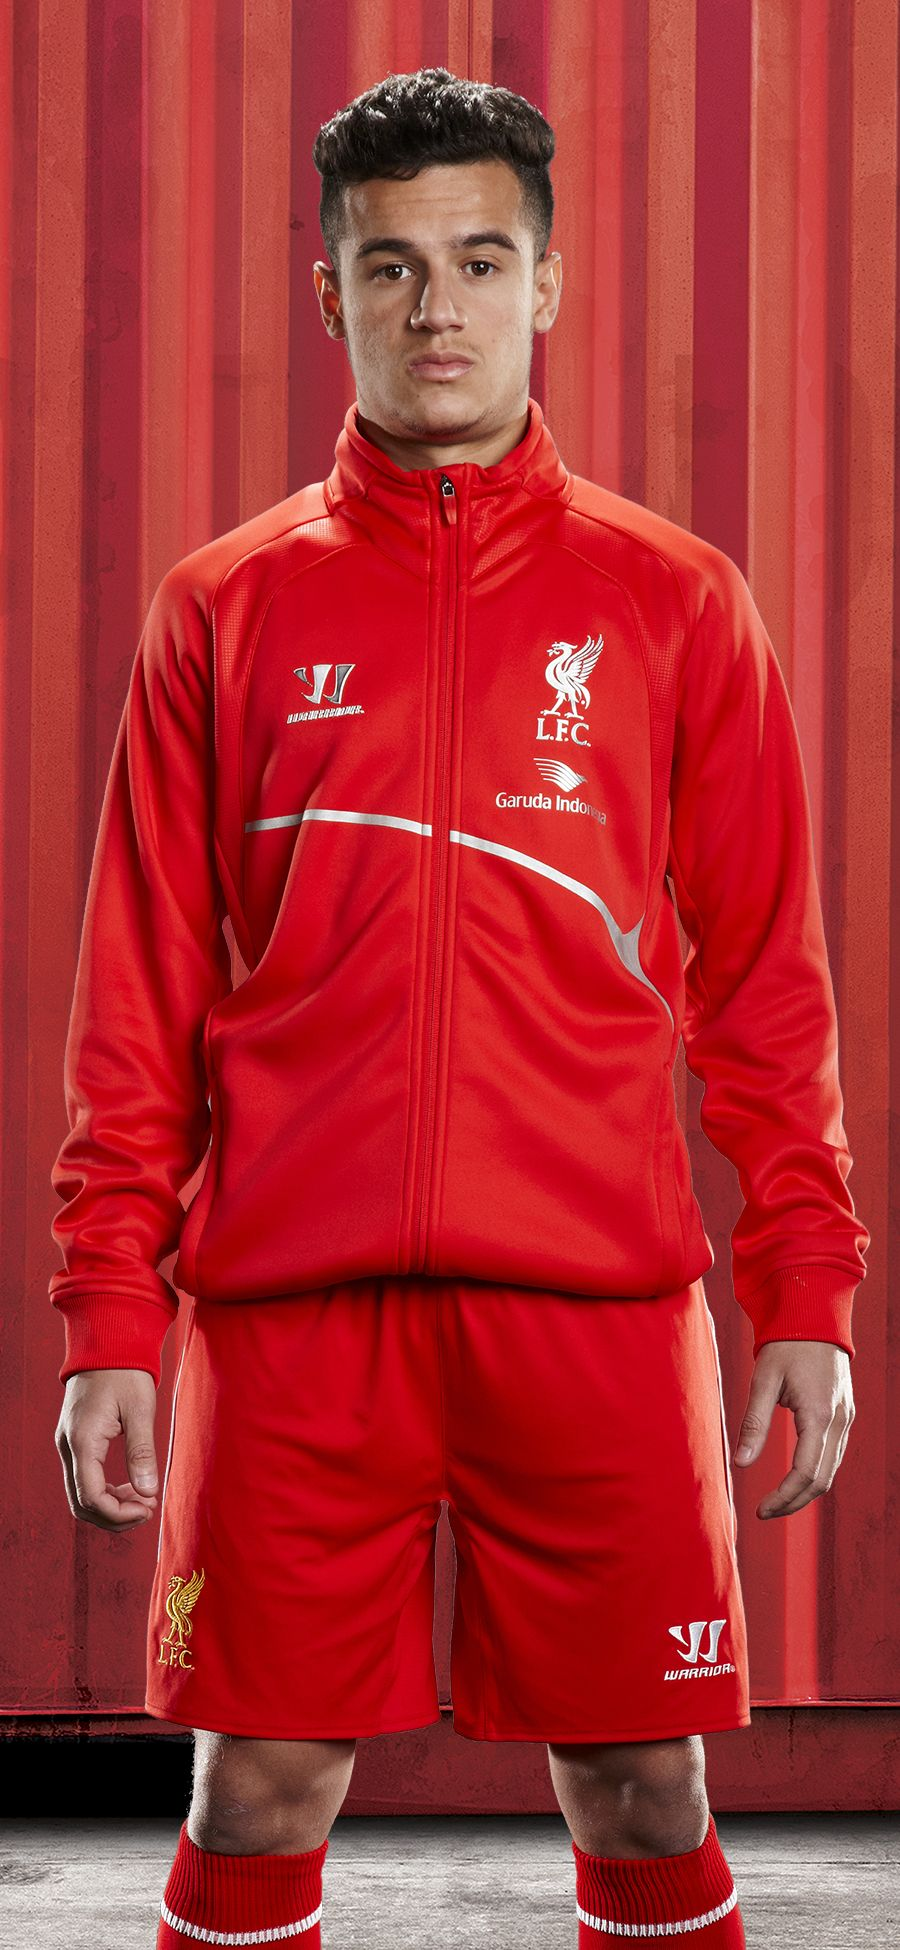 #LFC and award-winning airline Garuda Indonesia today revealed the Reds' training kit for next season. Here's the full story: http://lfc.tv/yze.